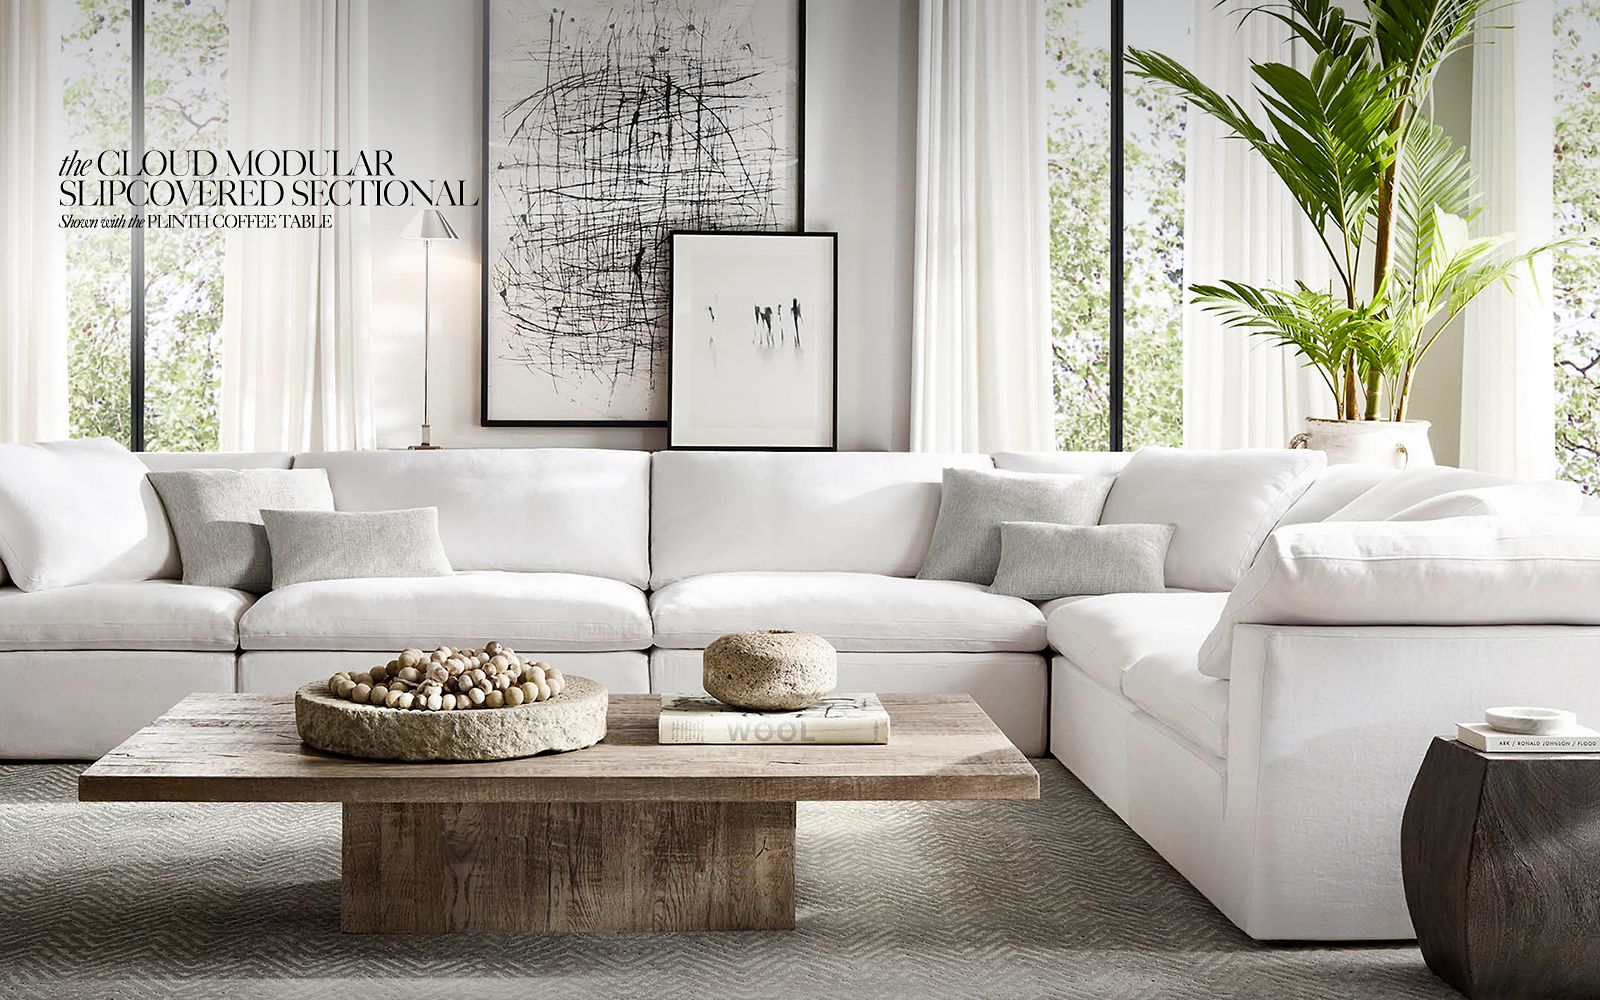 Restoration hardware bedroom furniture -  A New And Inspiring Way To Live